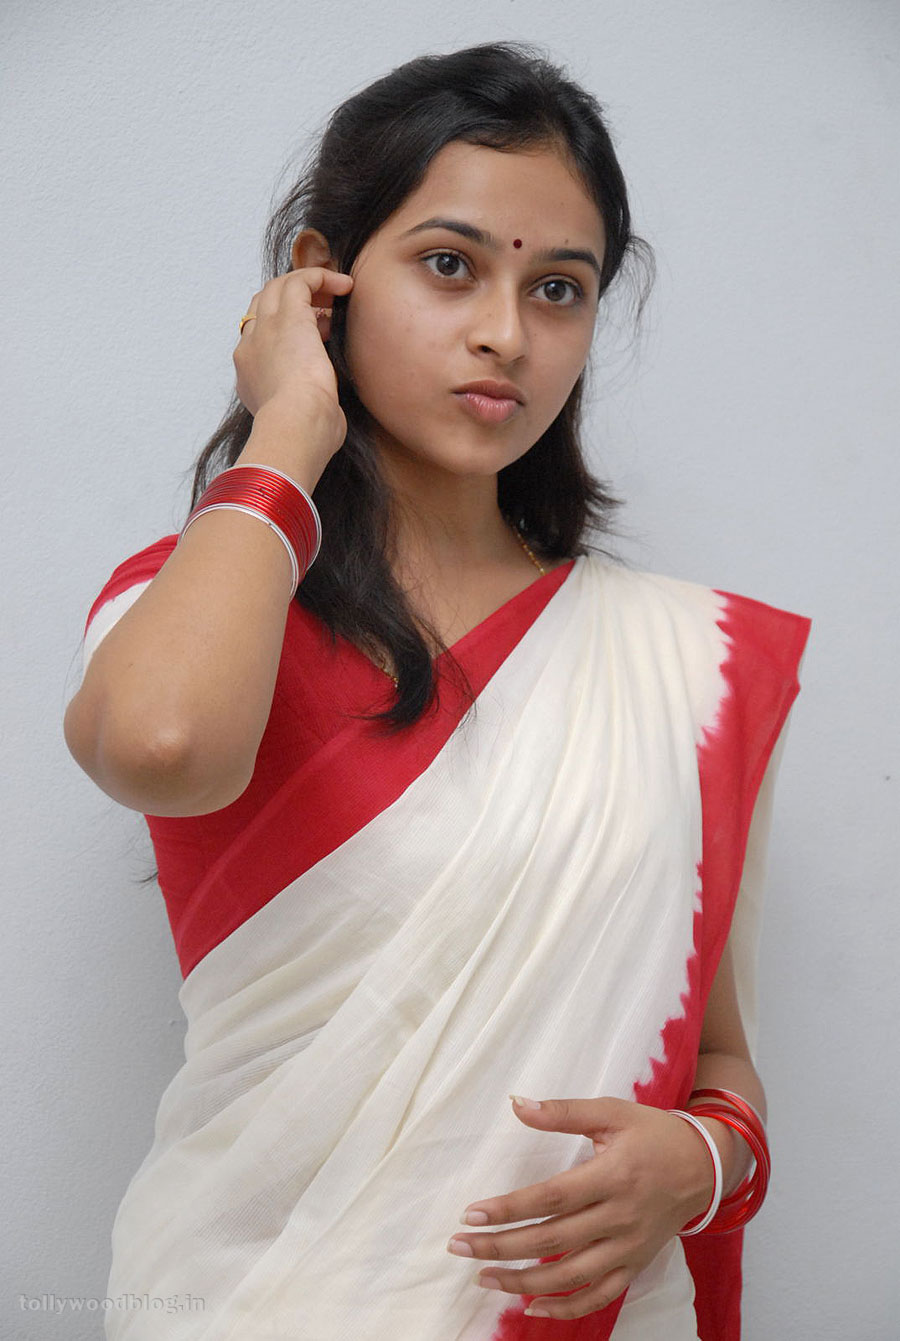 Very Stylish Girl Wallpapers Sri Divya Beautiful Traditional Look Photo Shoto